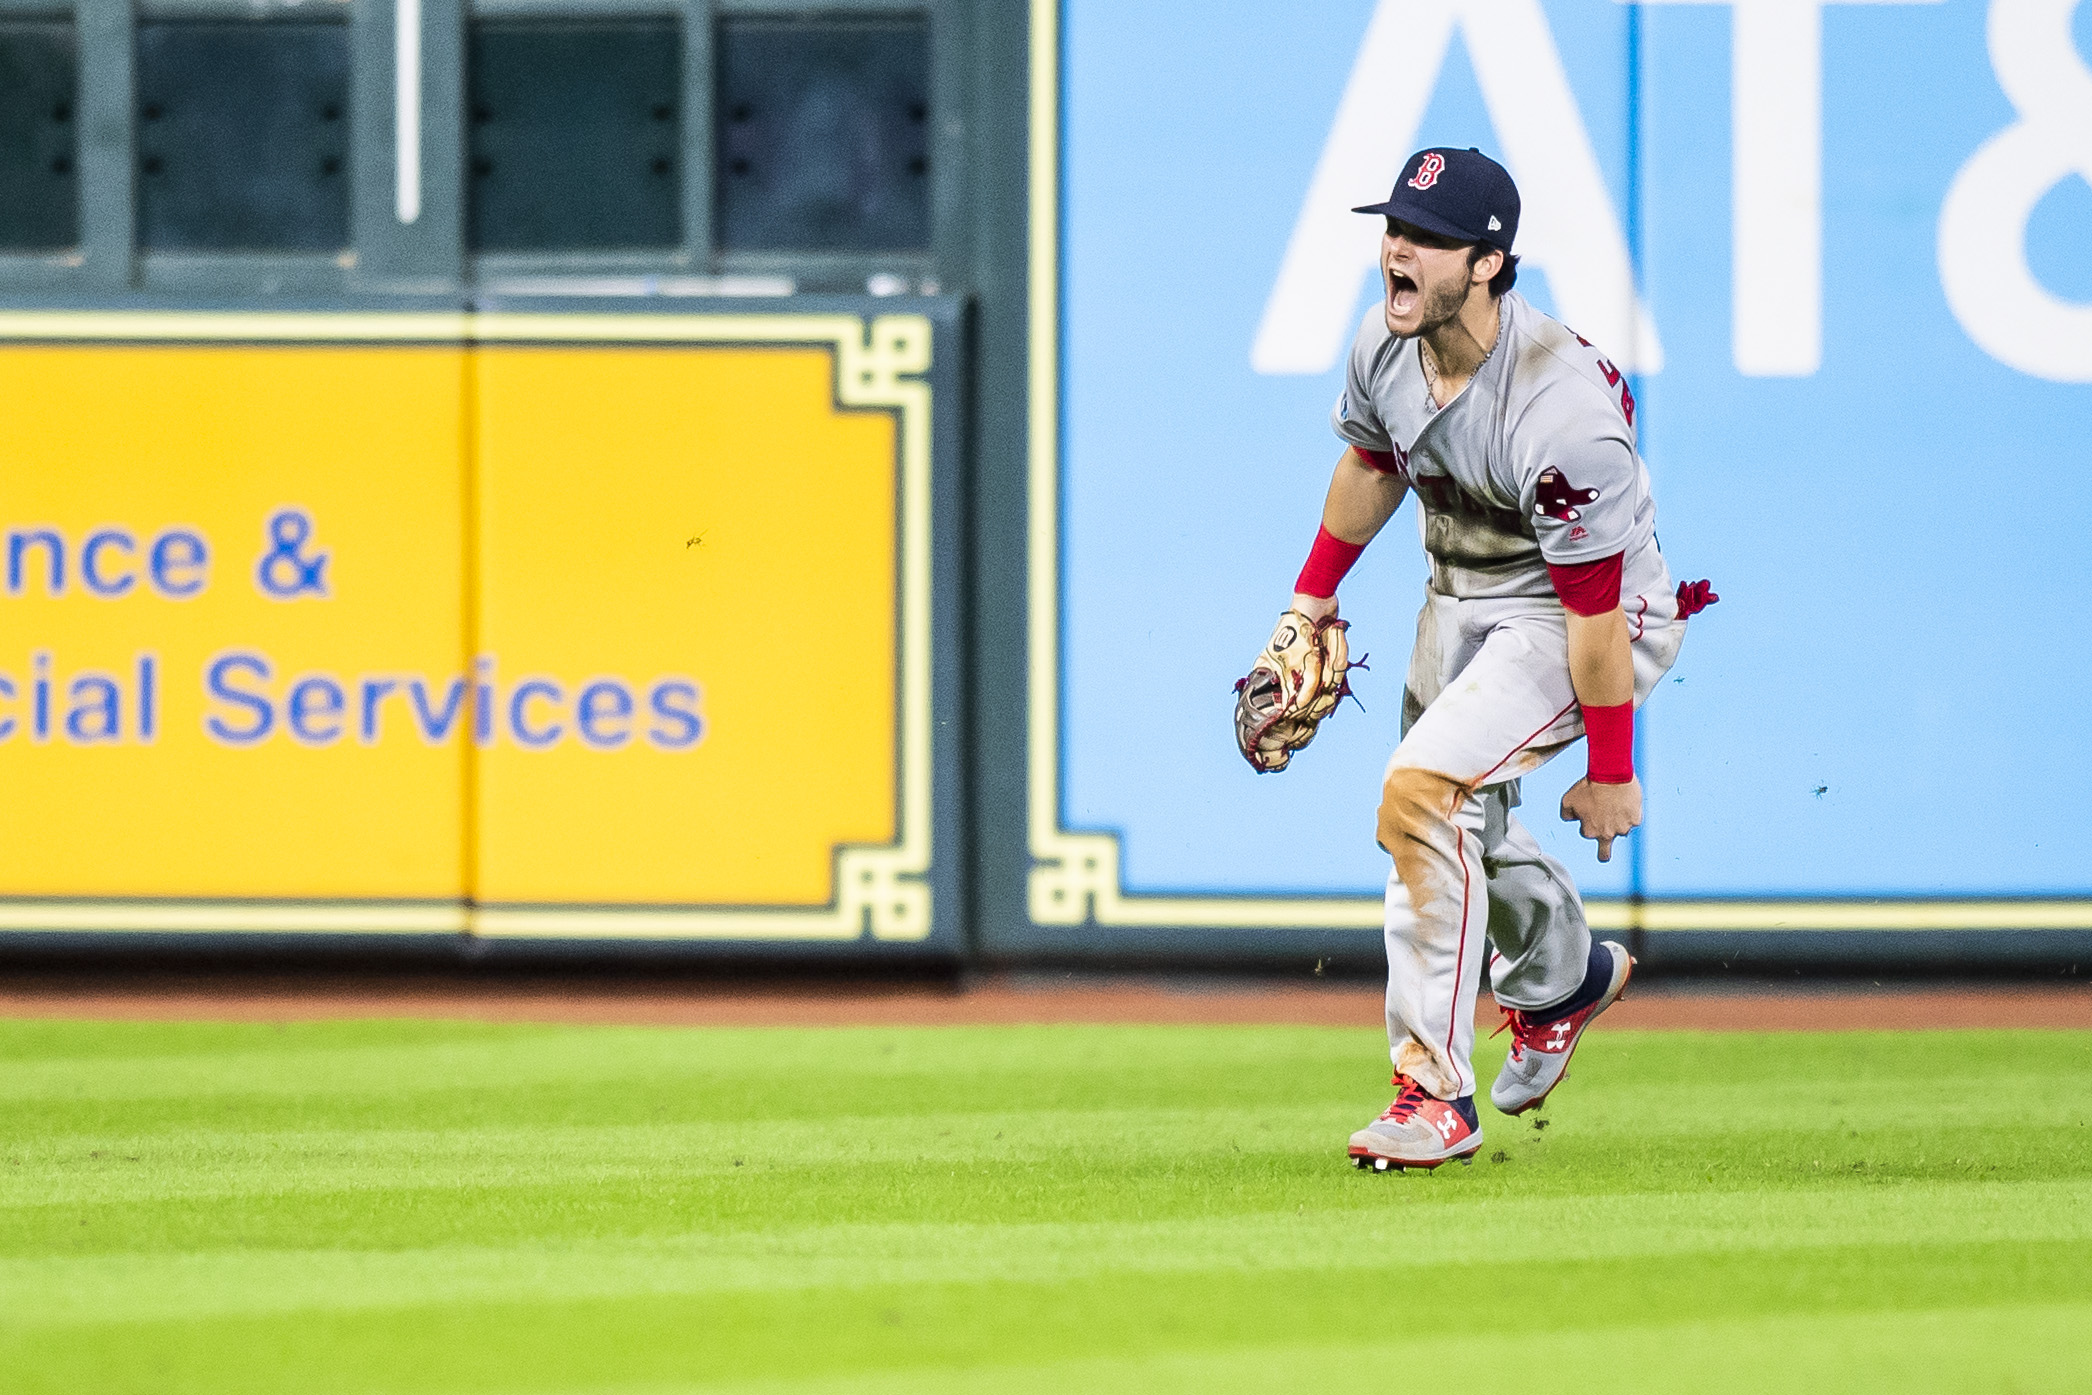 October 17, 2018, Houston, TX: Boston Red Sox outfielder Andrew Benintendi celebrates making the game winning catch after the Boston Red Sox defeated the Houston Astros in Game 4 of the ALCS at Minute Maid Park in Houston, Texas on Wednesday, October 17, 2018. (Photo by Matthew Thomas/Boston Red Sox)